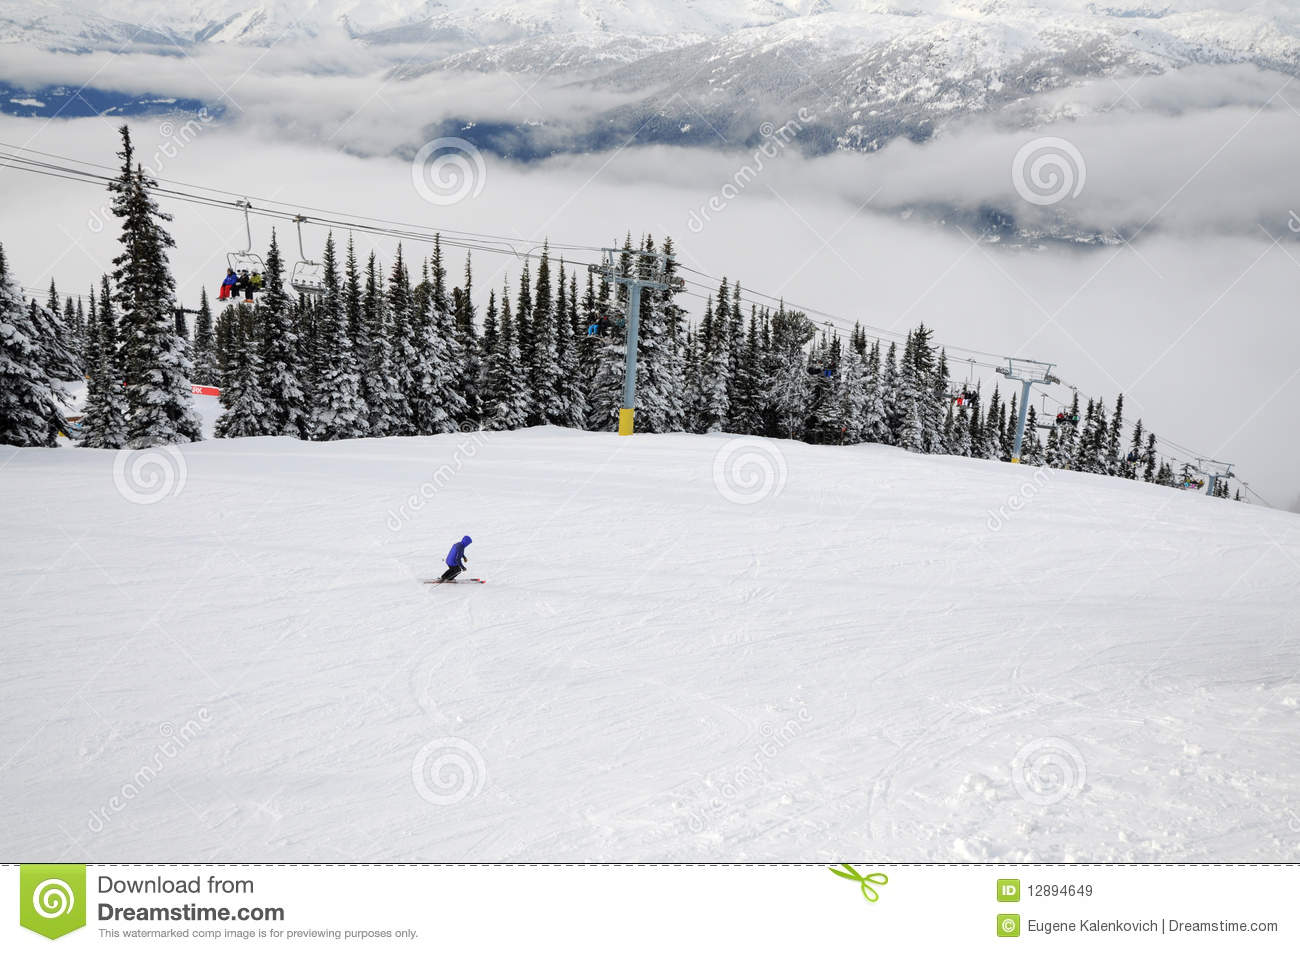 Scene at Whistler-Blackcomb ski resort